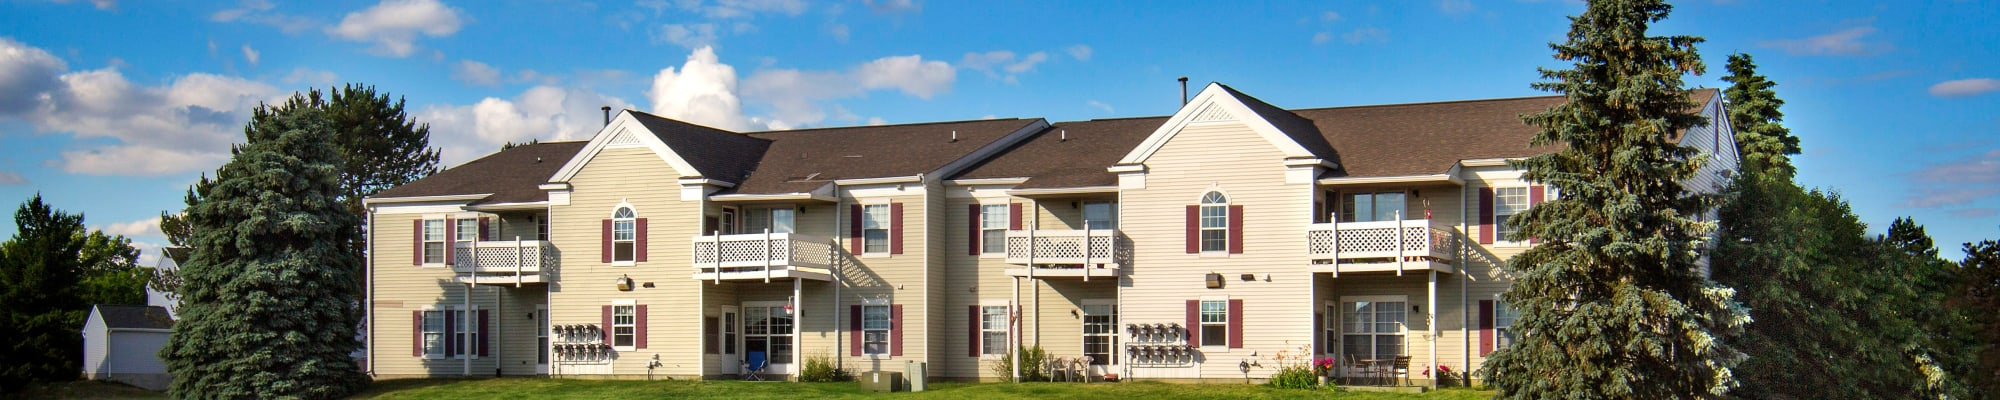 Schedule a tour to view 1820 South Apartments in Mount Pleasant, Michigan